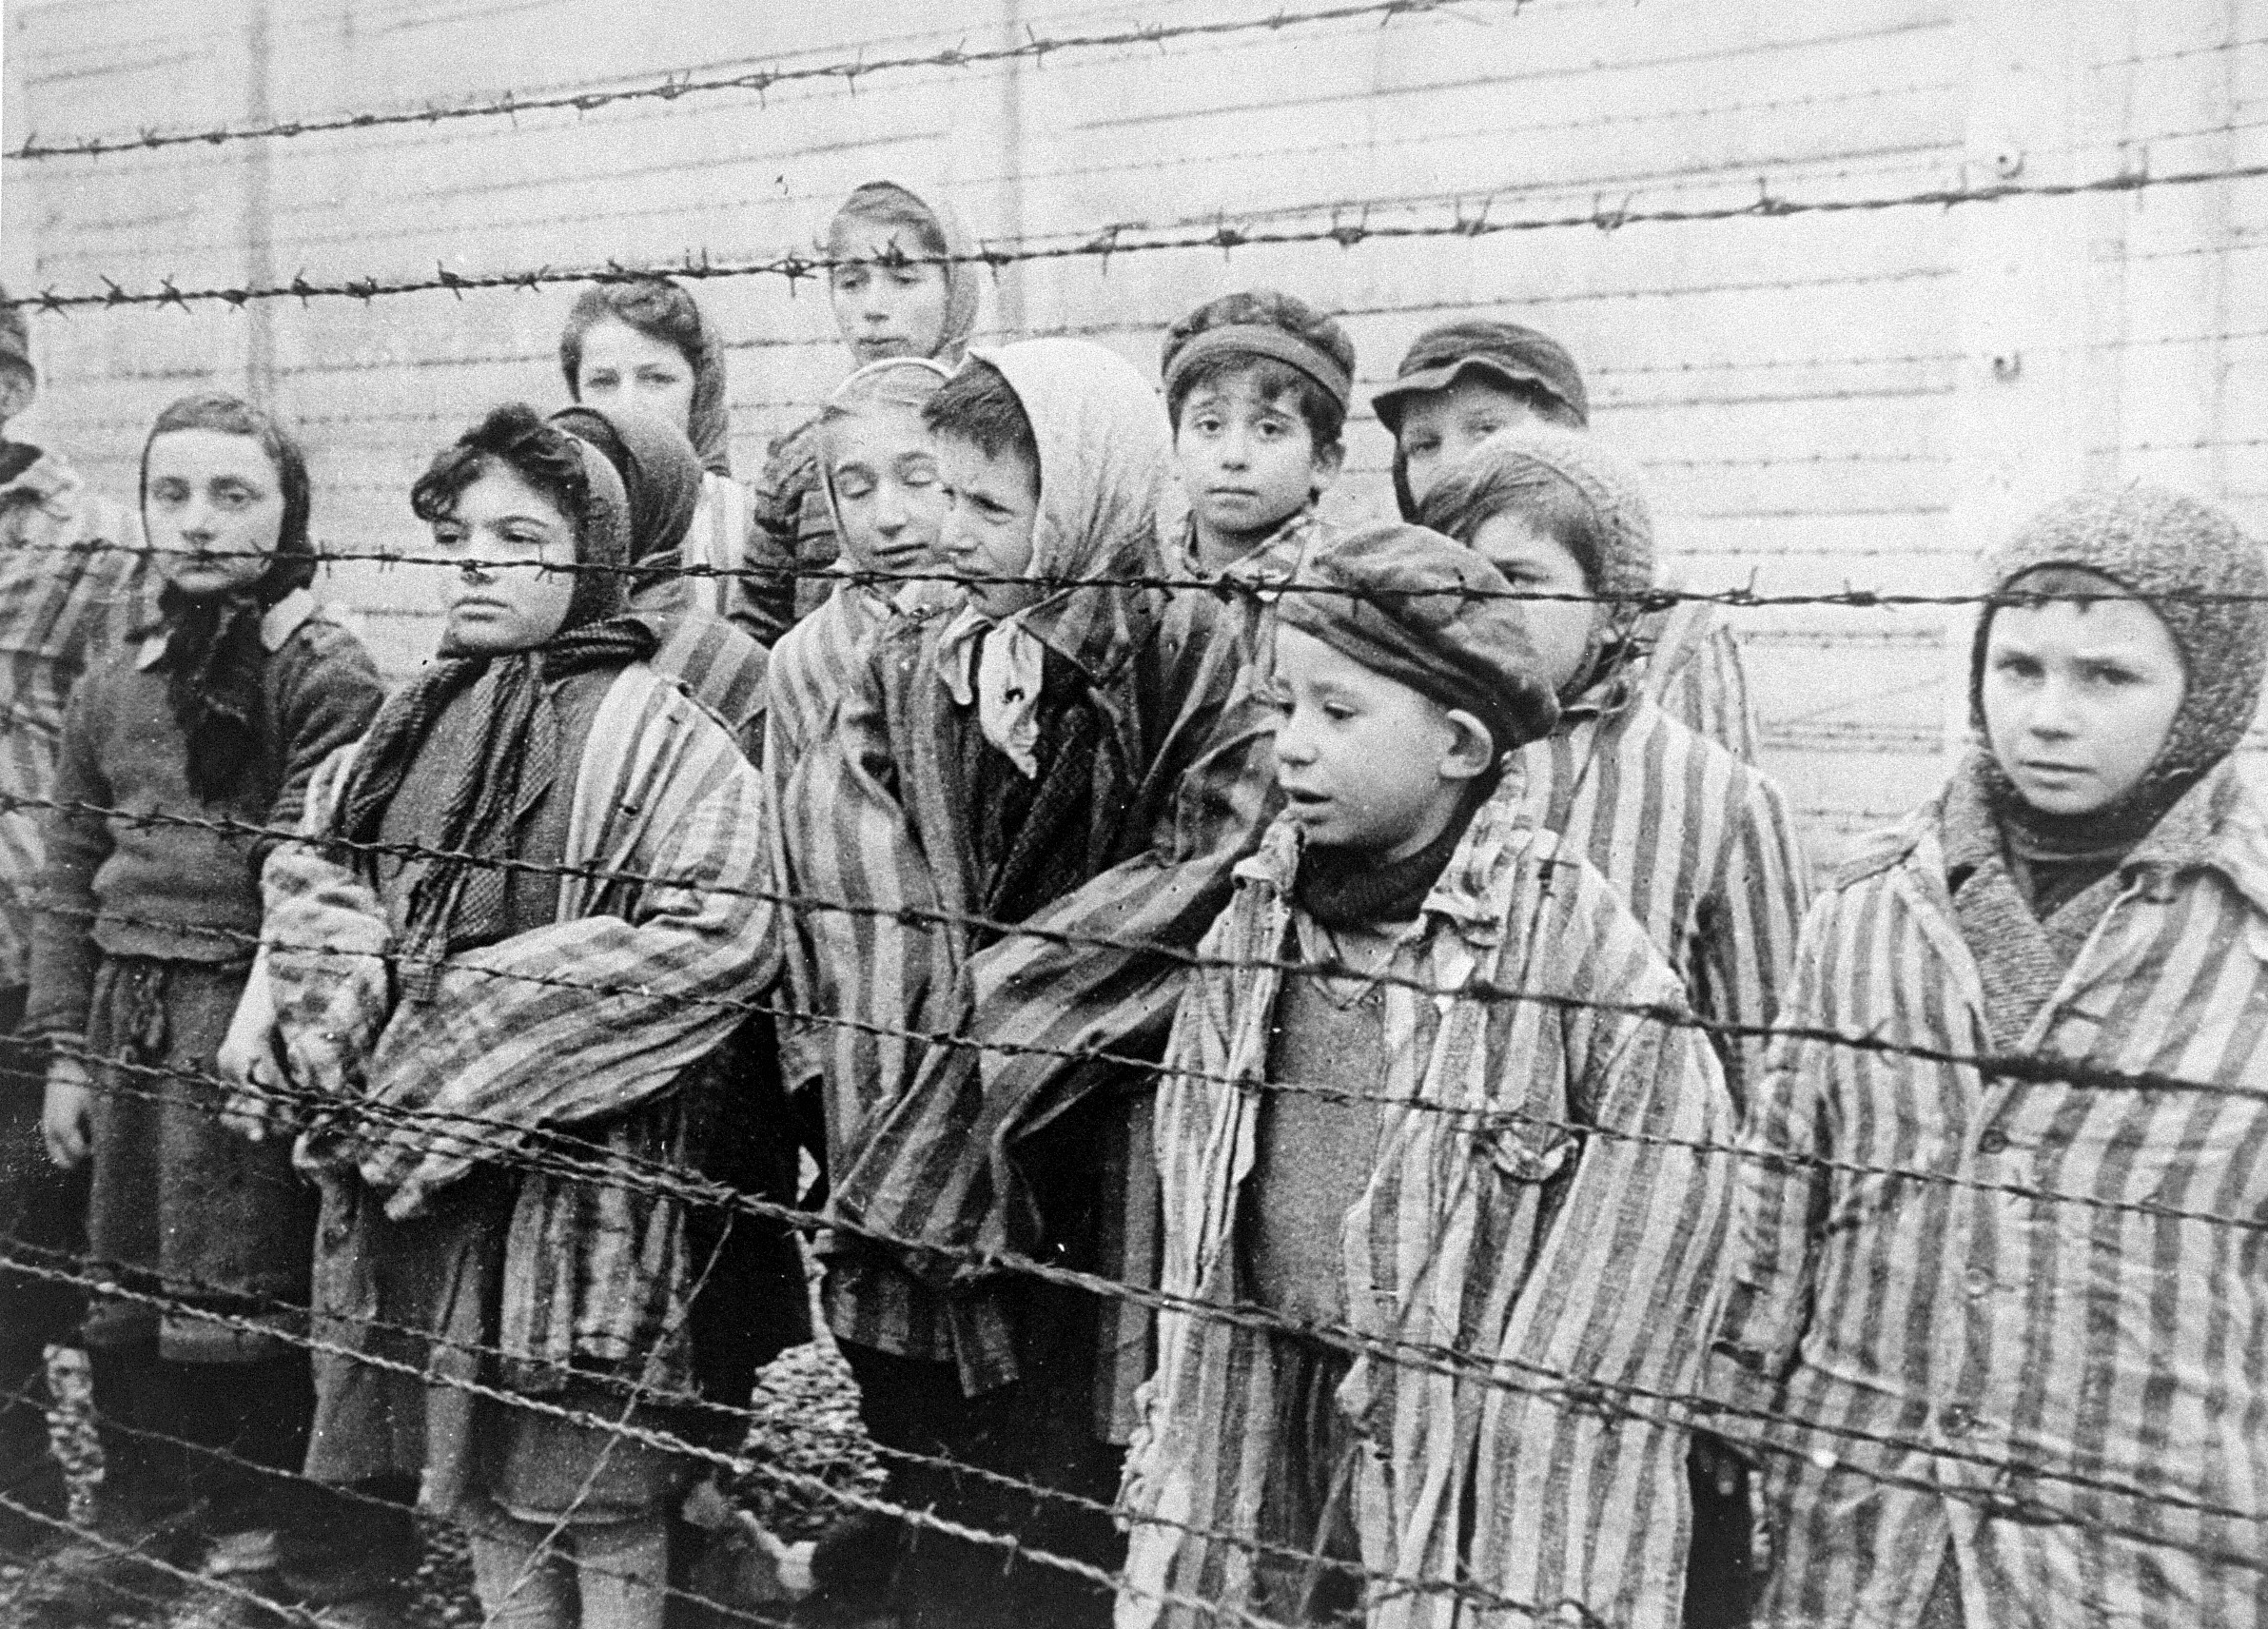 https://upload.wikimedia.org/wikipedia/commons/5/51/Child_survivors_of_Auschwitz.jpeg